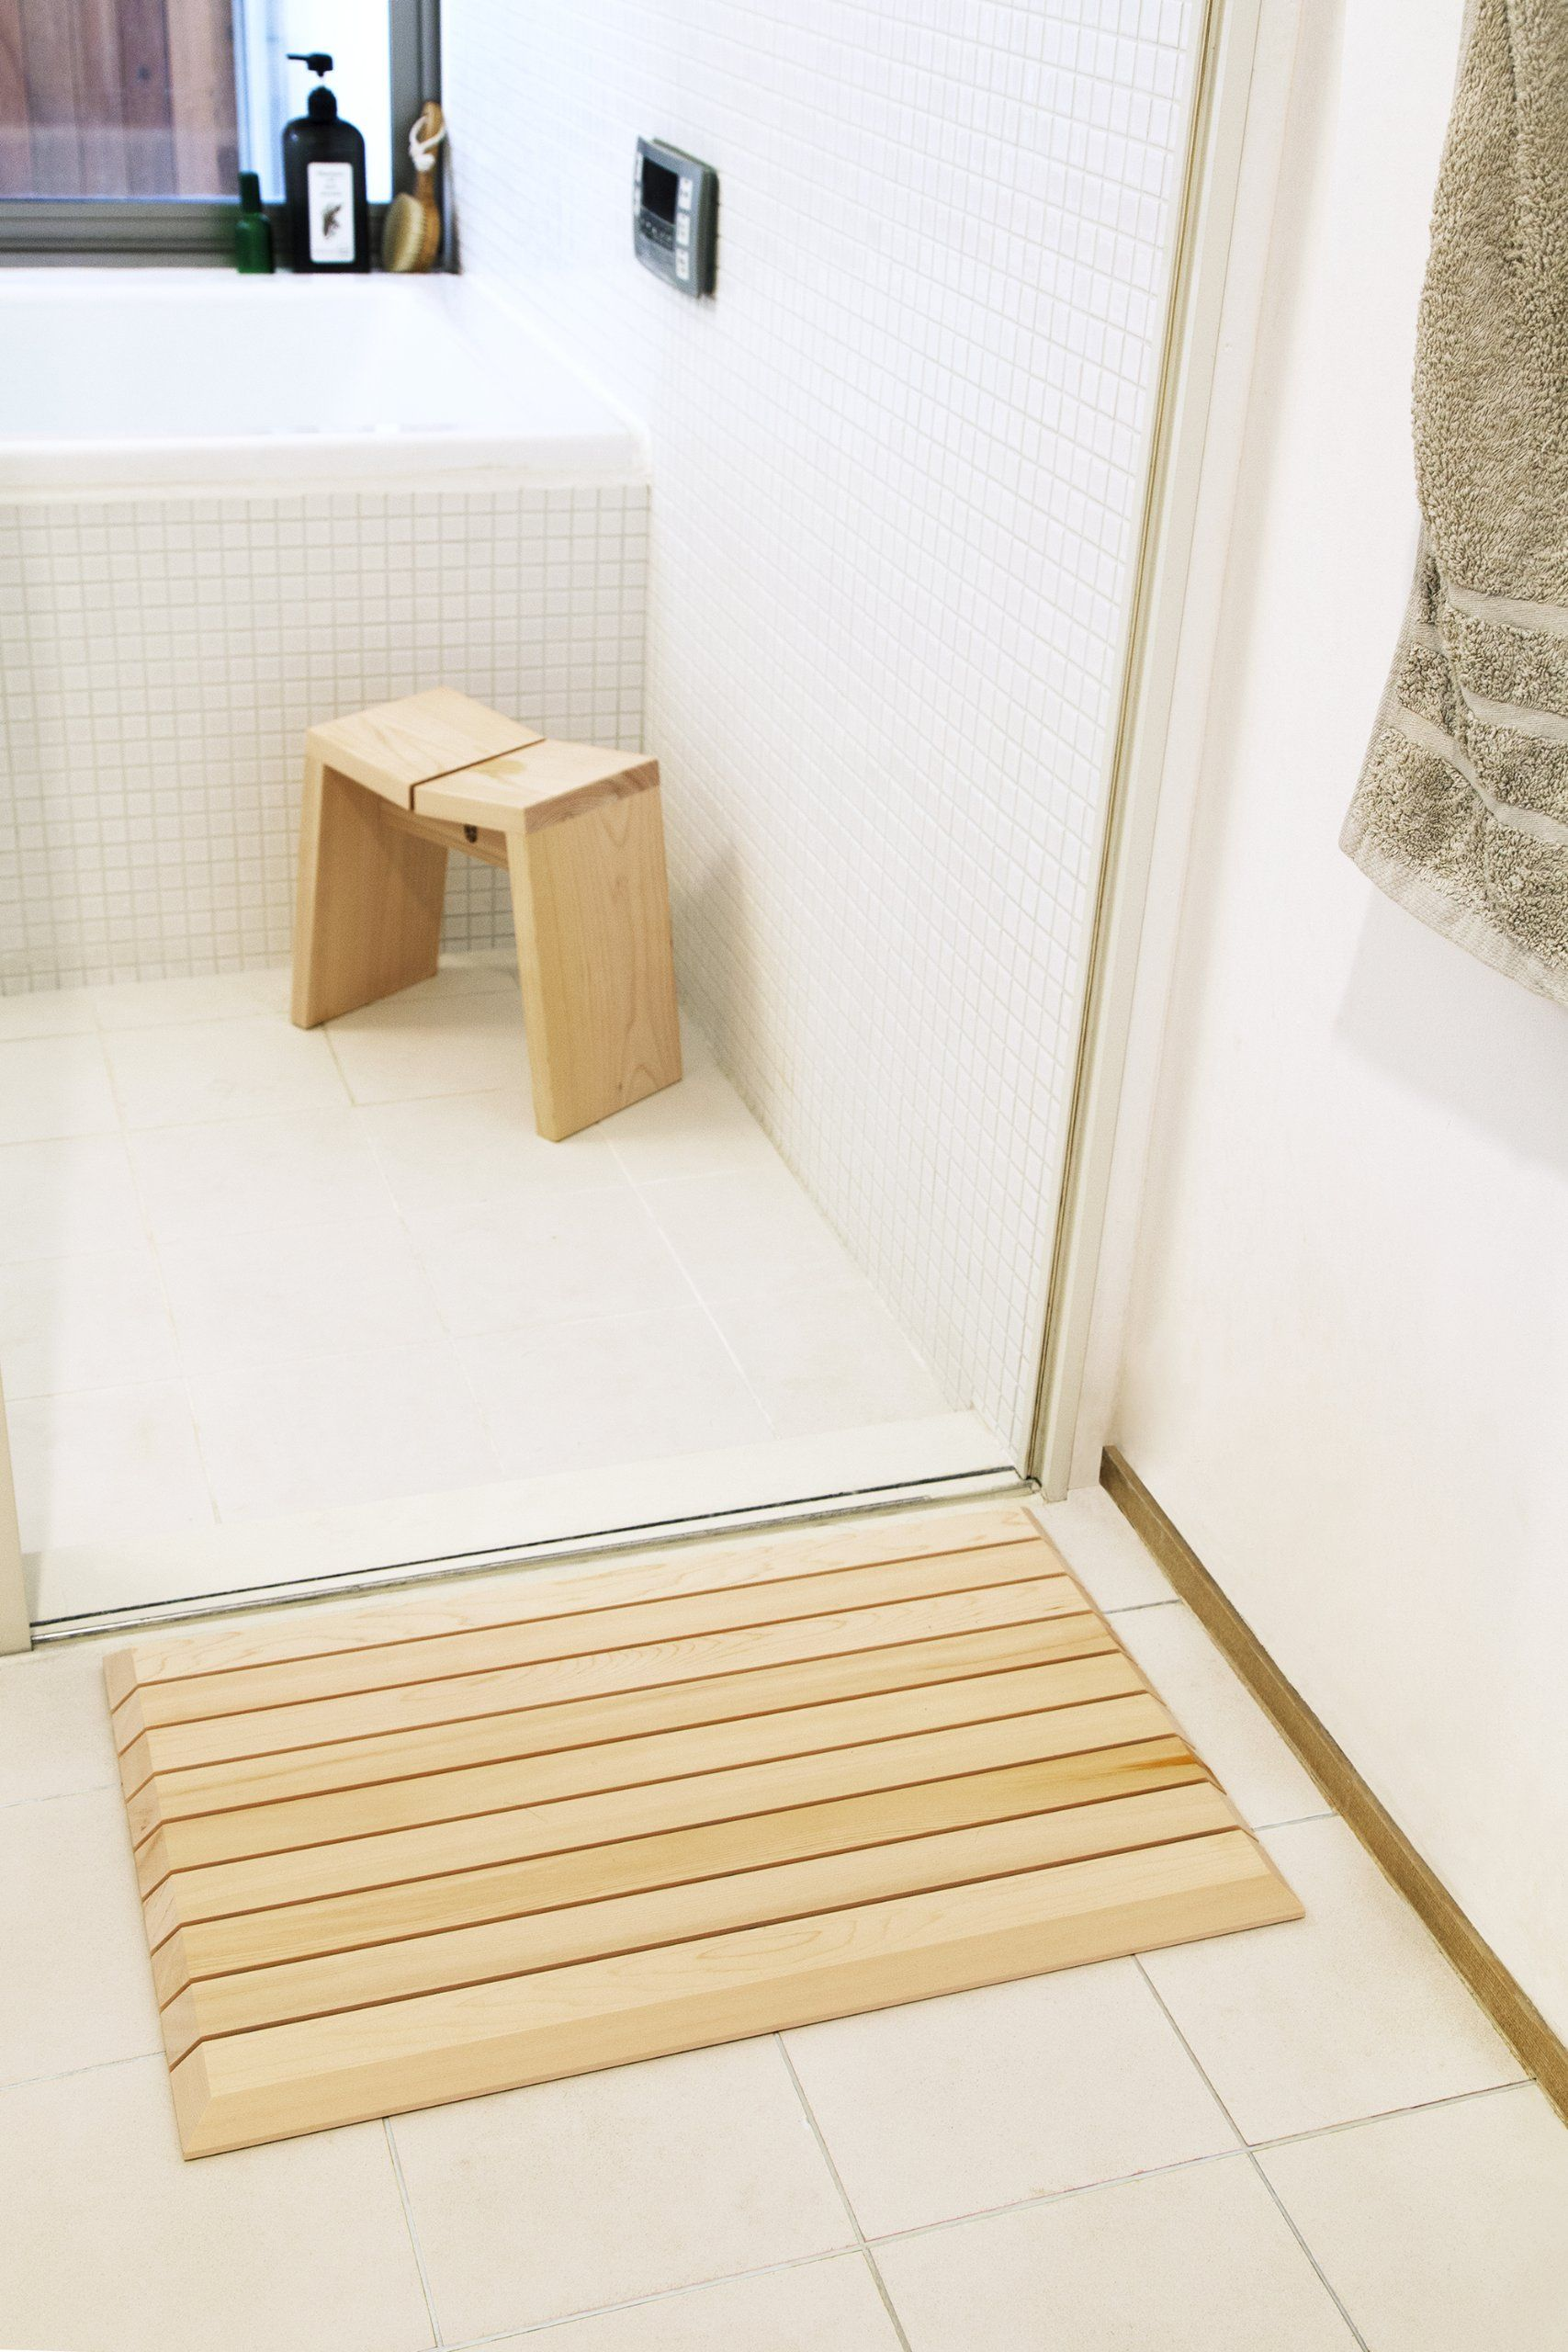 Wooden Bath Mat Made By Japanese Traditional